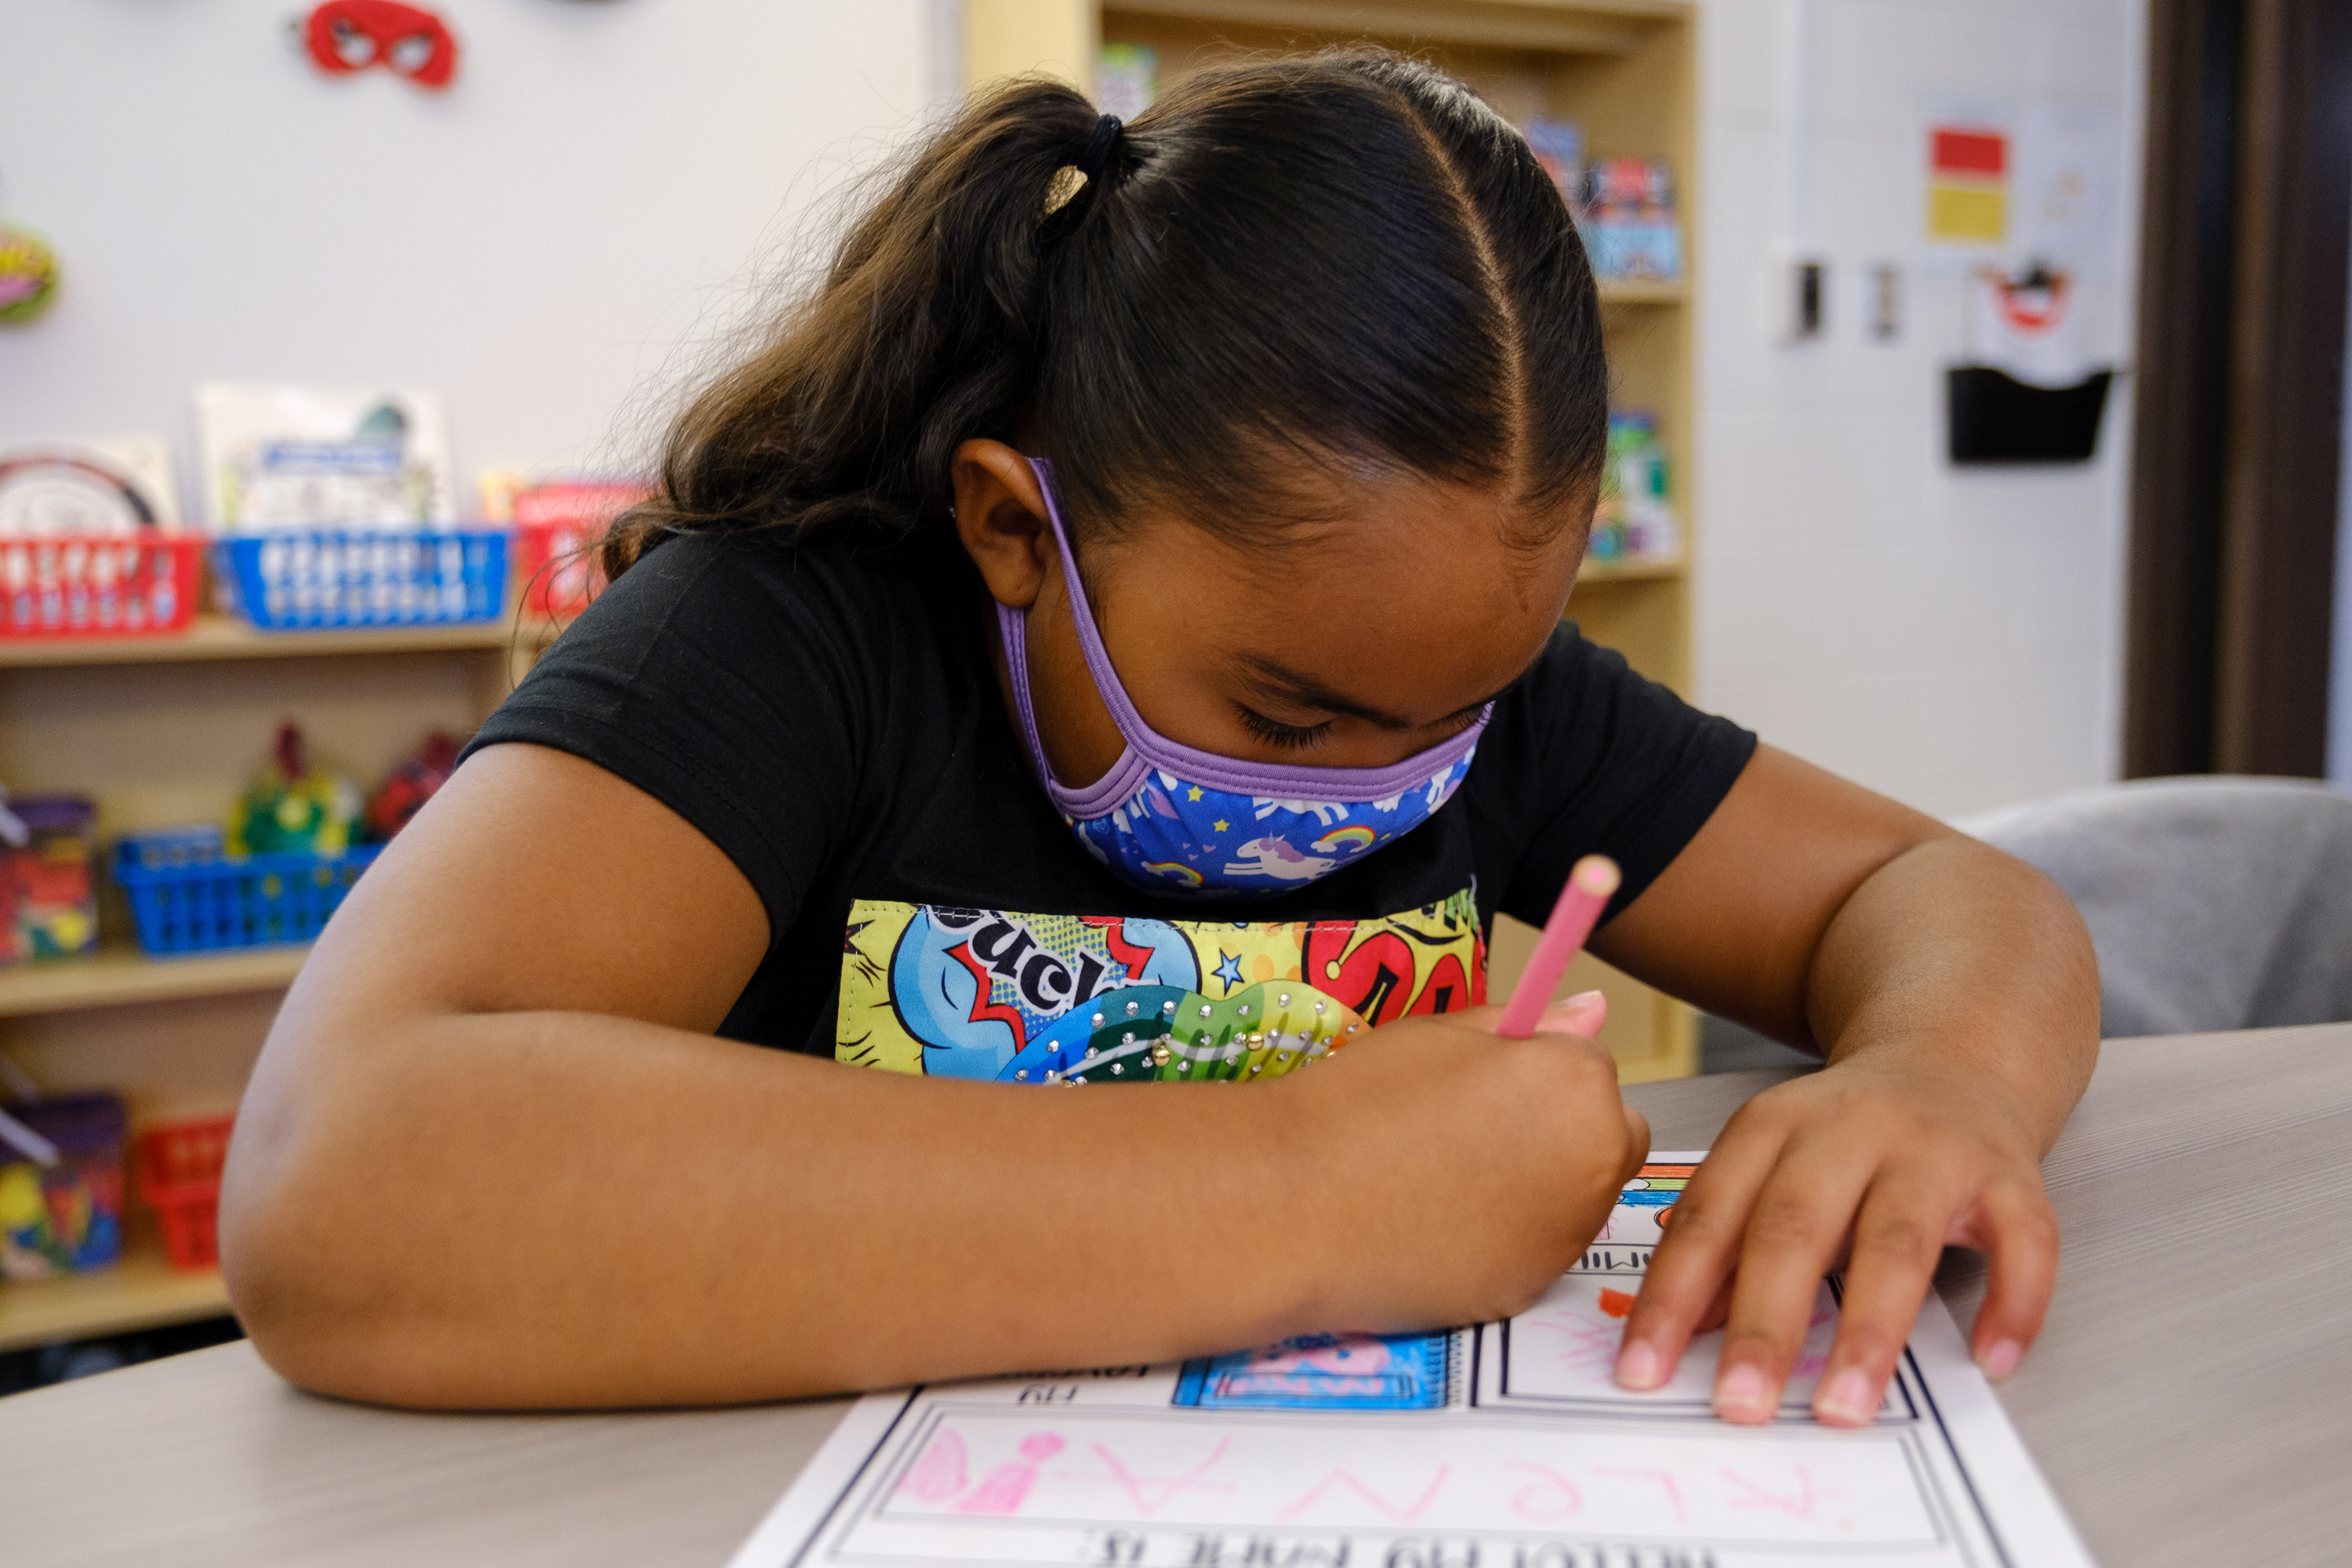 A young girl wearing a mask writes on a worksheet at her desk.